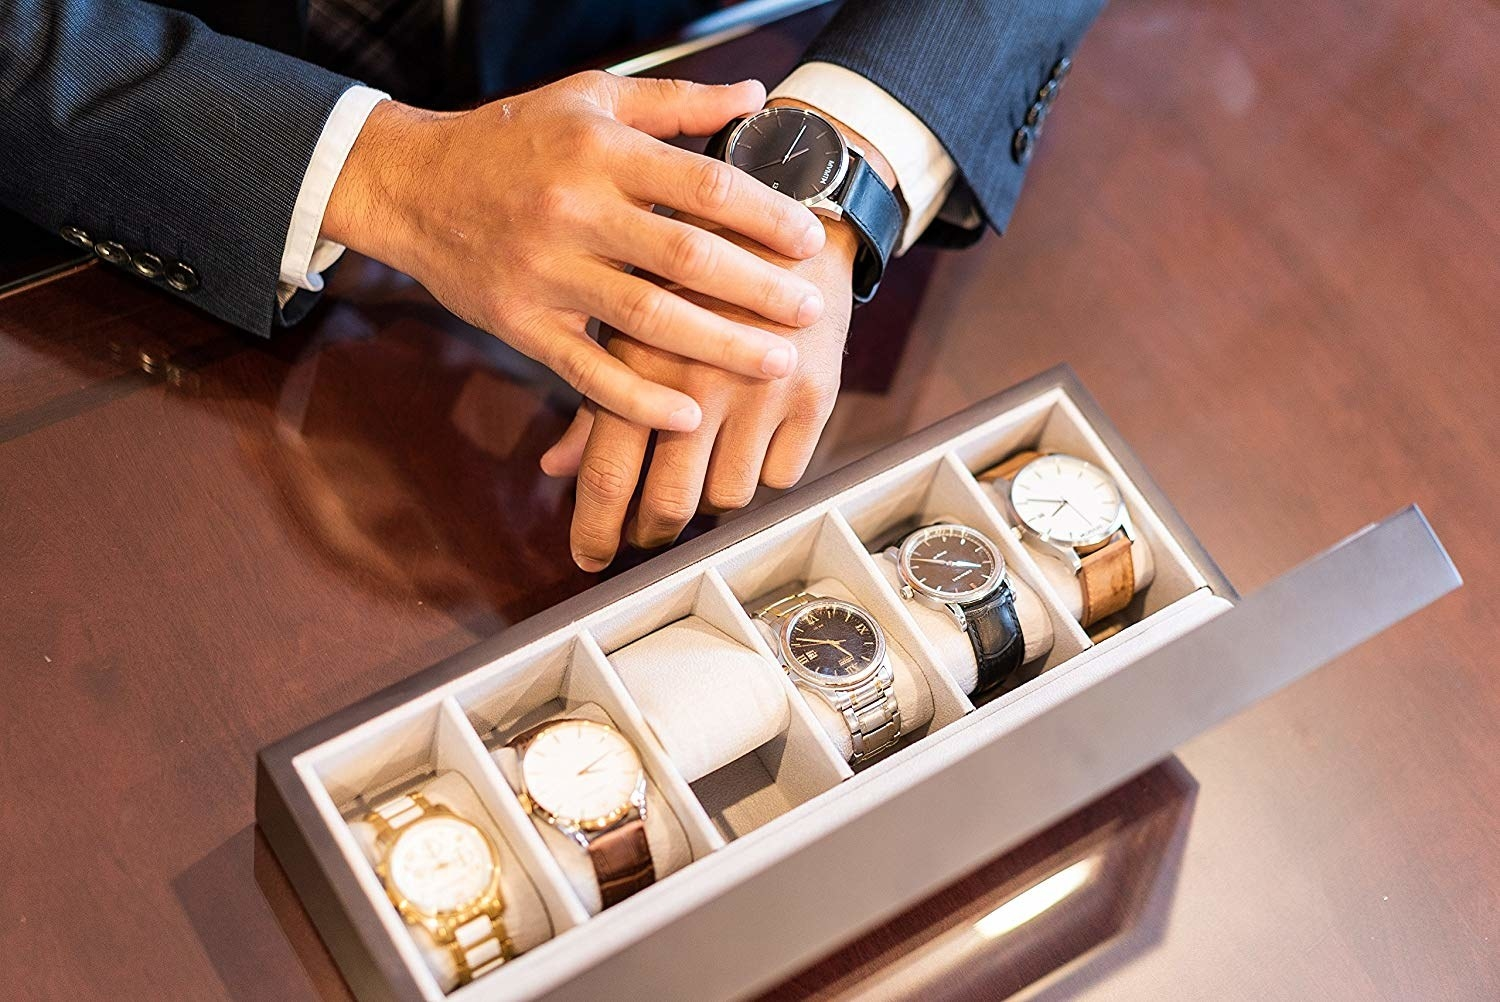 A wood and glass display box with room for six wrist watches